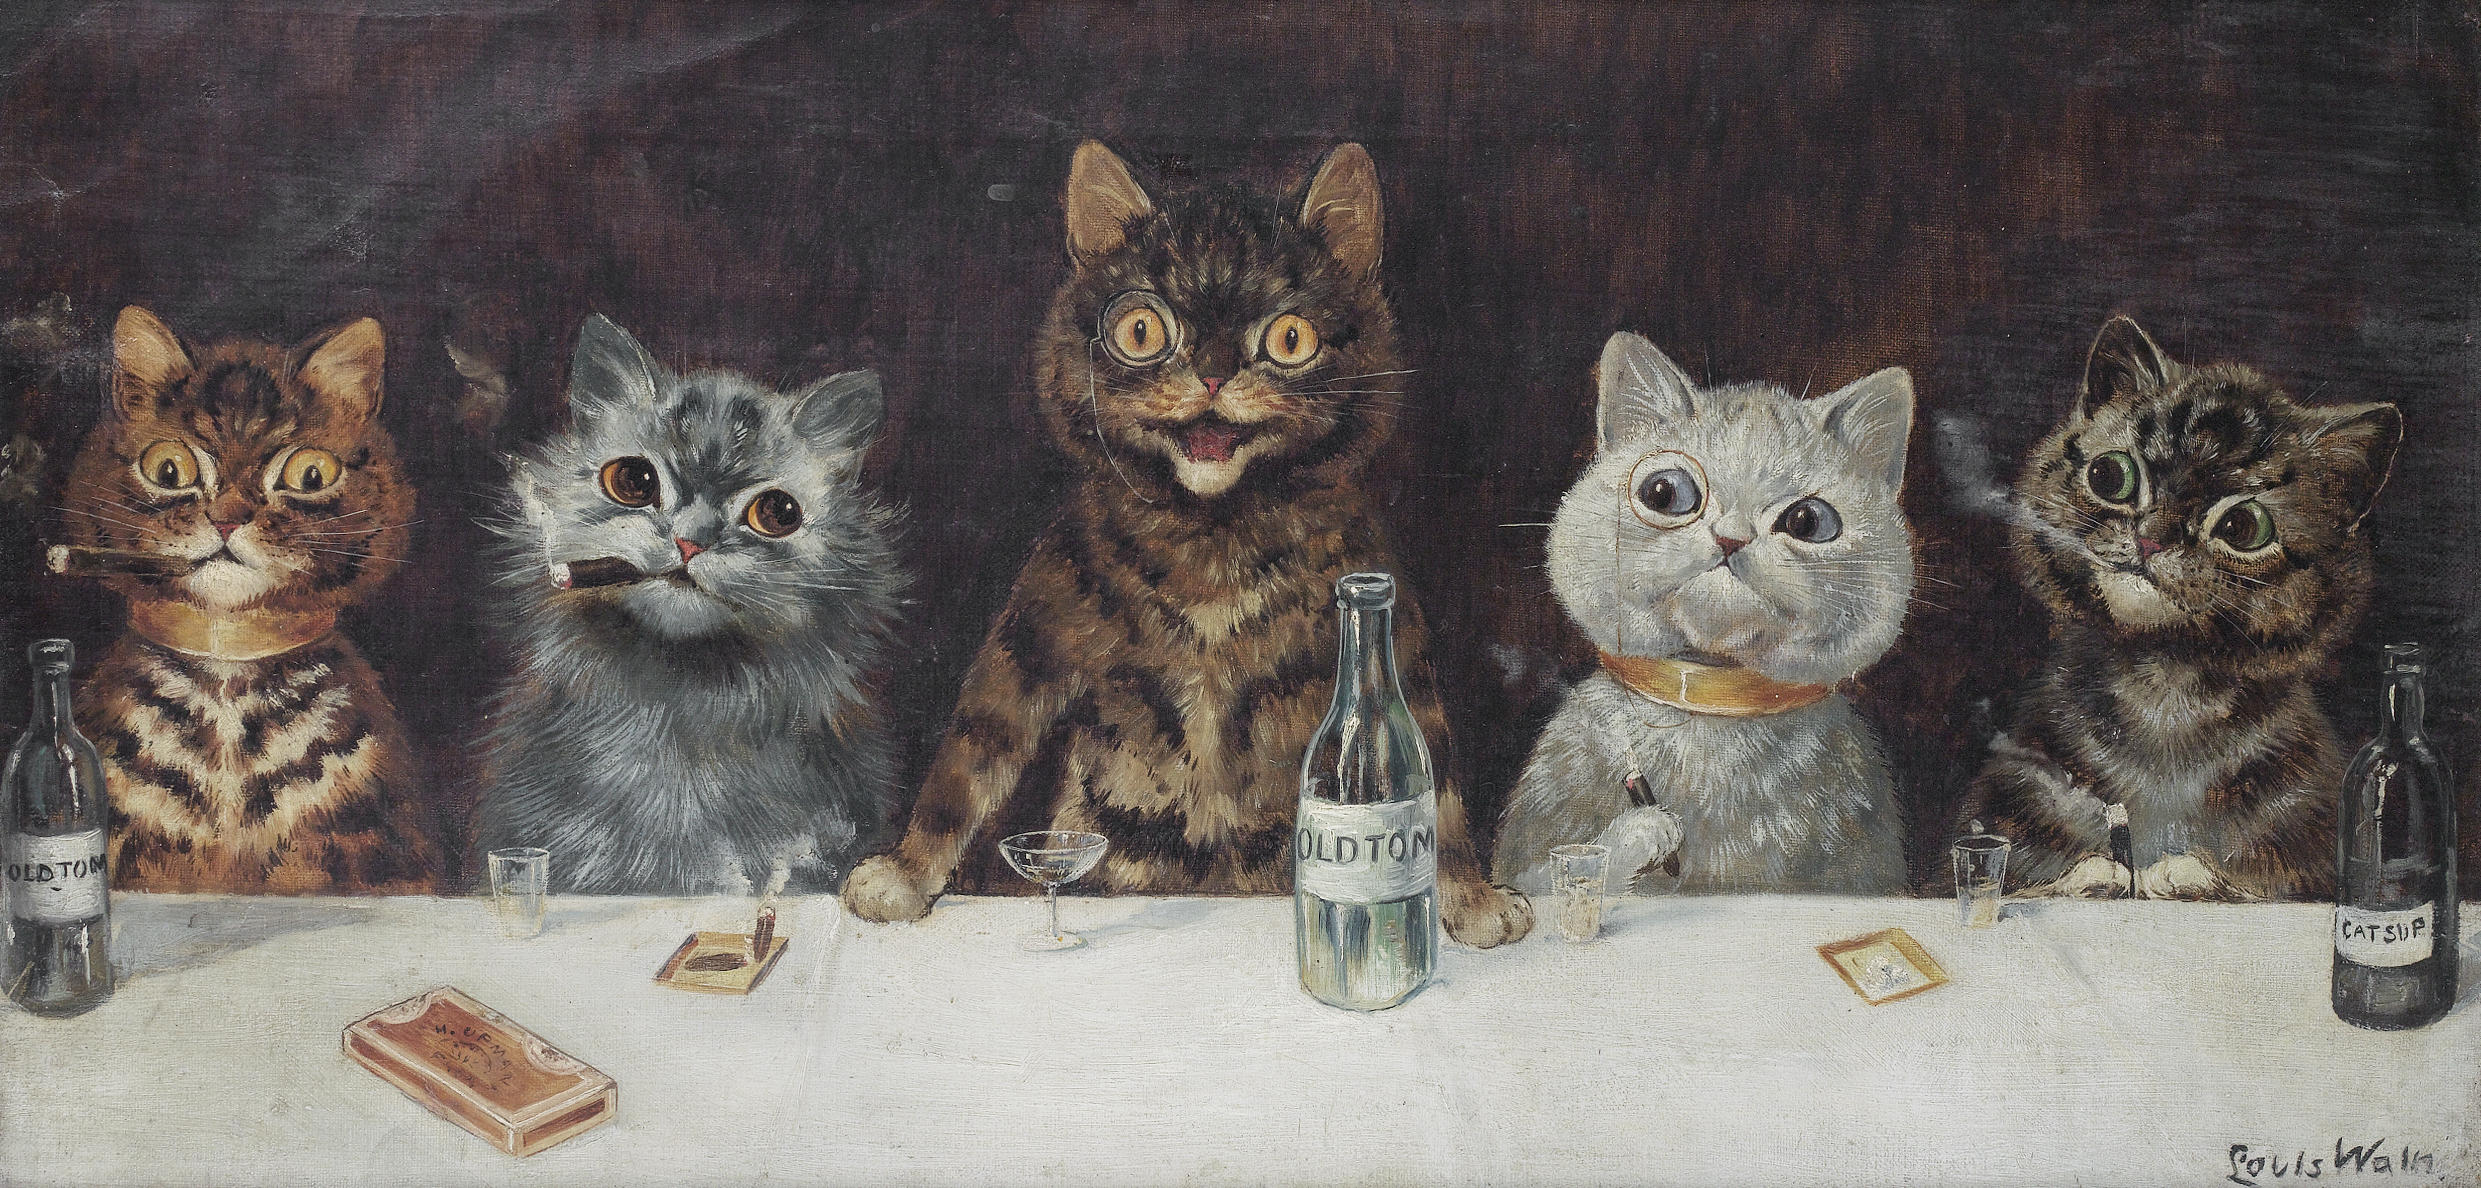 mental illness and art Louis Wain the bachelor party